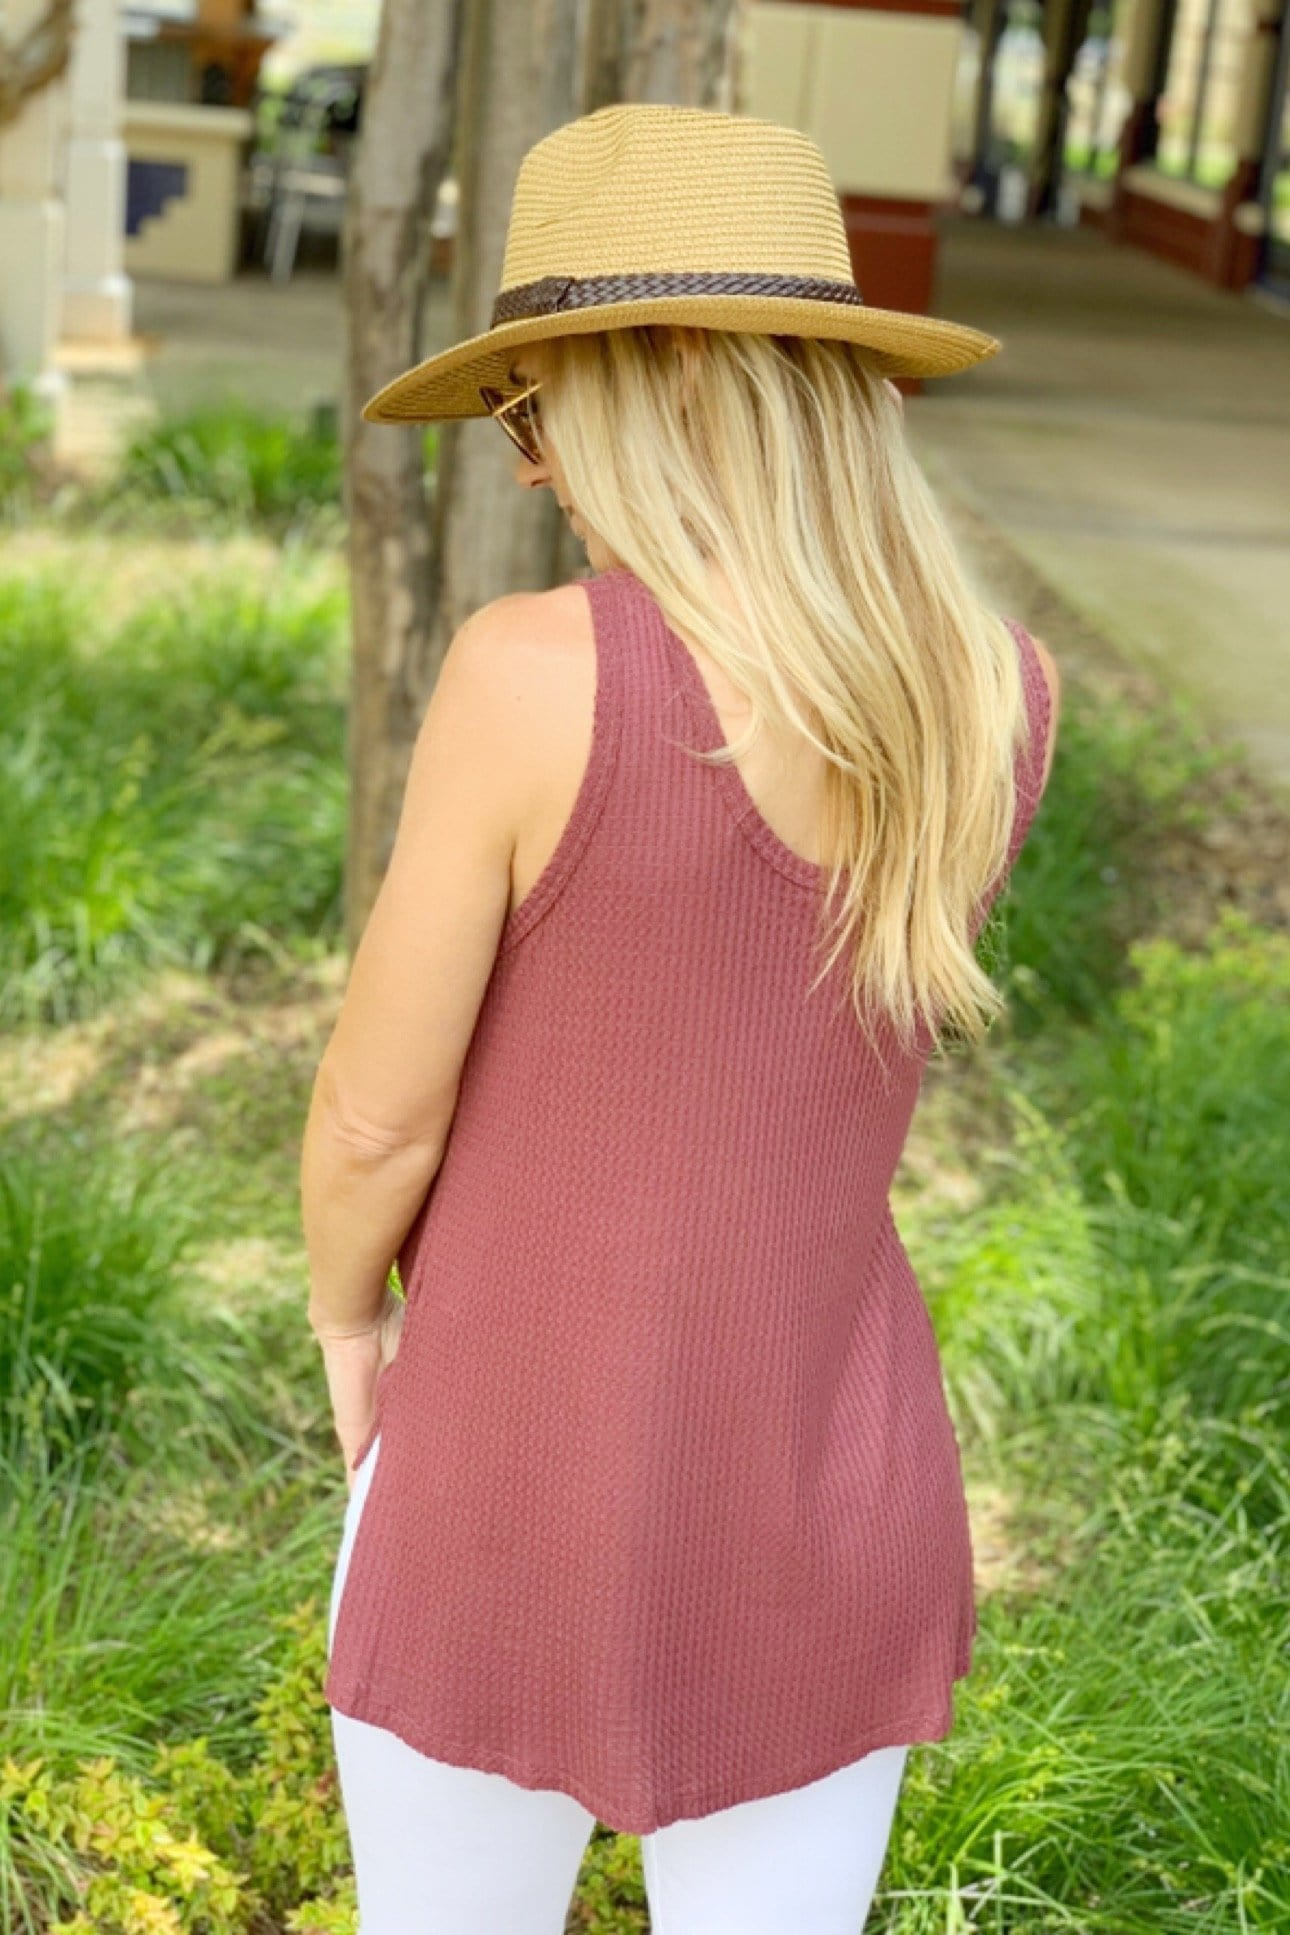 BETTER GET GOING HI/LO WAFFLE KNIT TOP-MARSALA - Infinity Raine